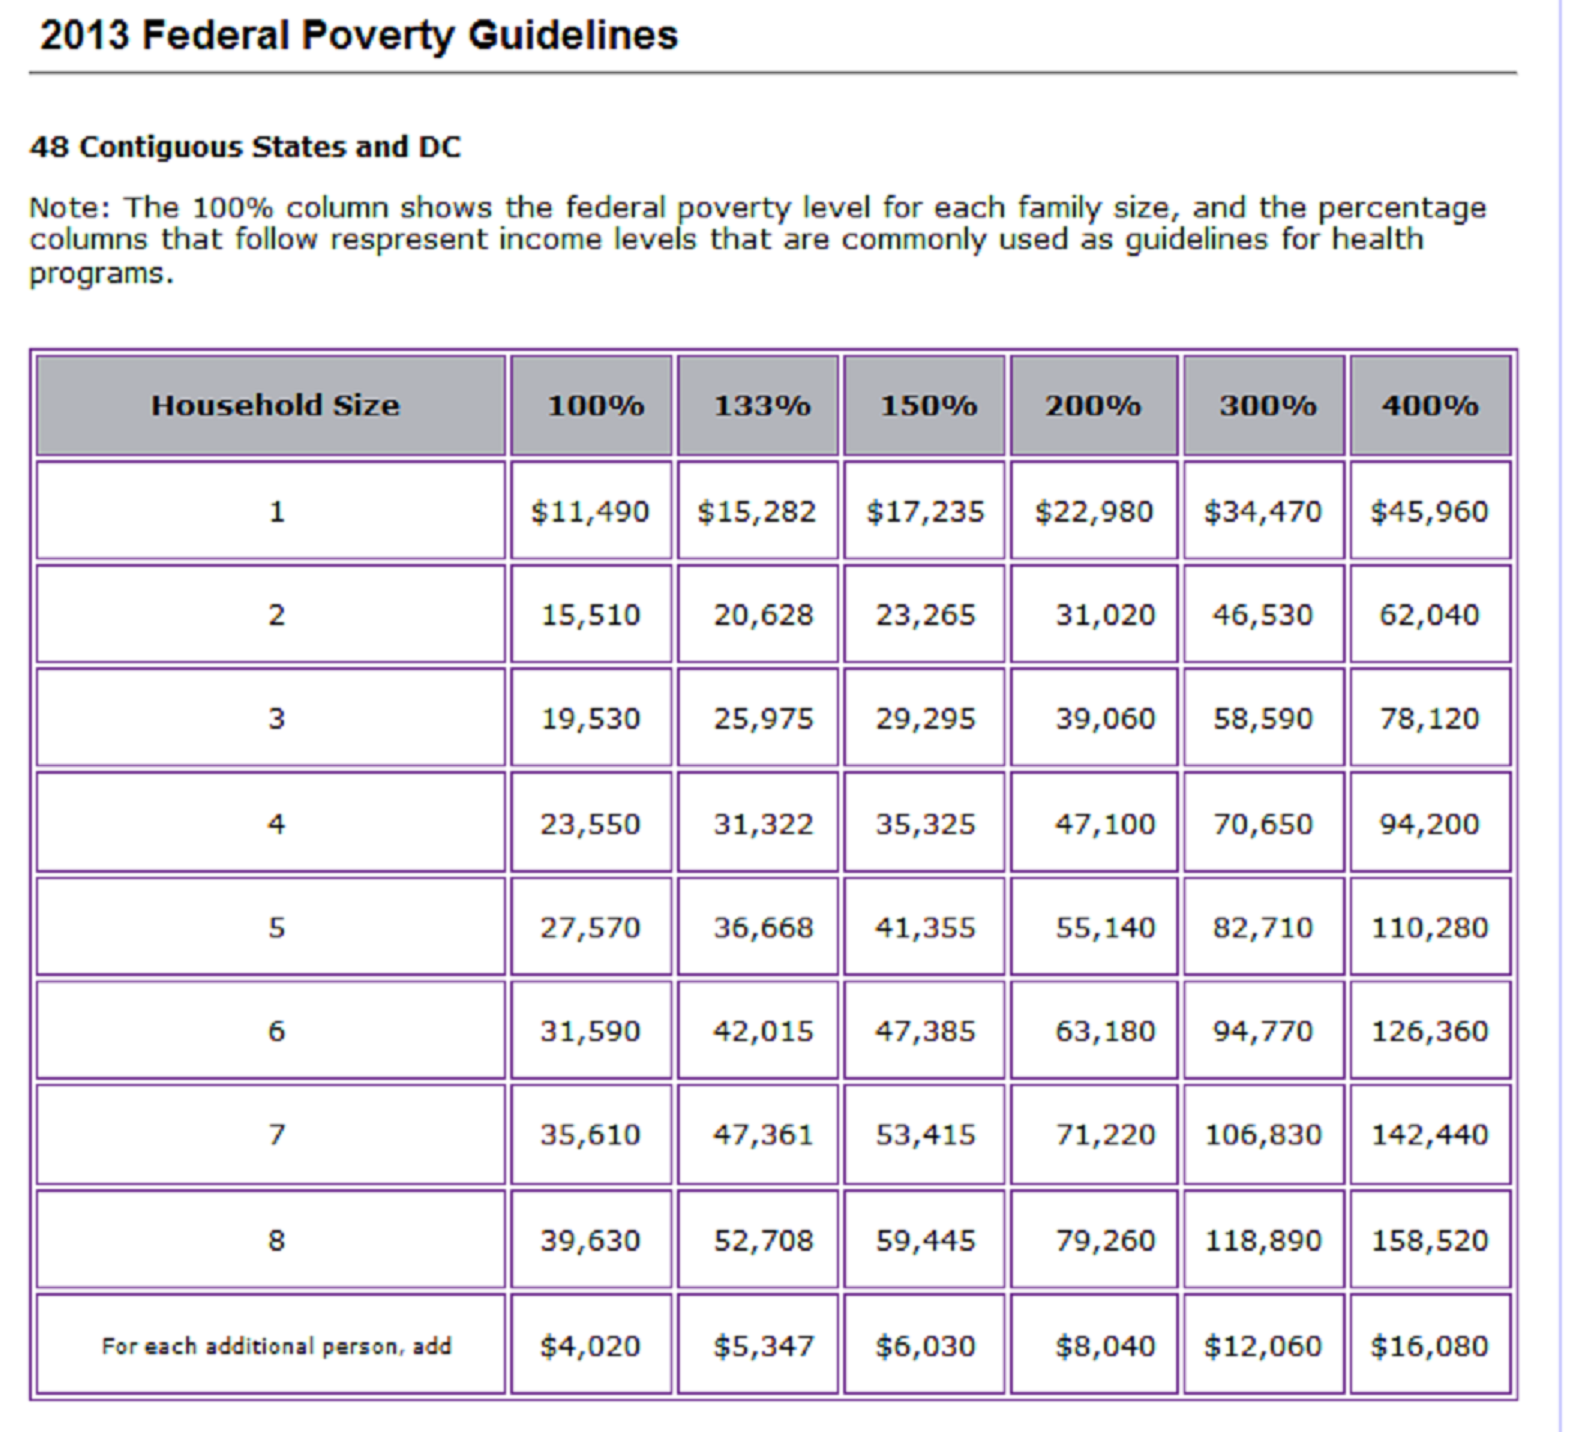 2013 Federal Poverty Guidelines, 48 Continuous States - Source: Tucson Citizen - http://tucsoncitizen.com/obamacare-news/2013/05/28/obamacare-help-and-the-federal-poverty-level/